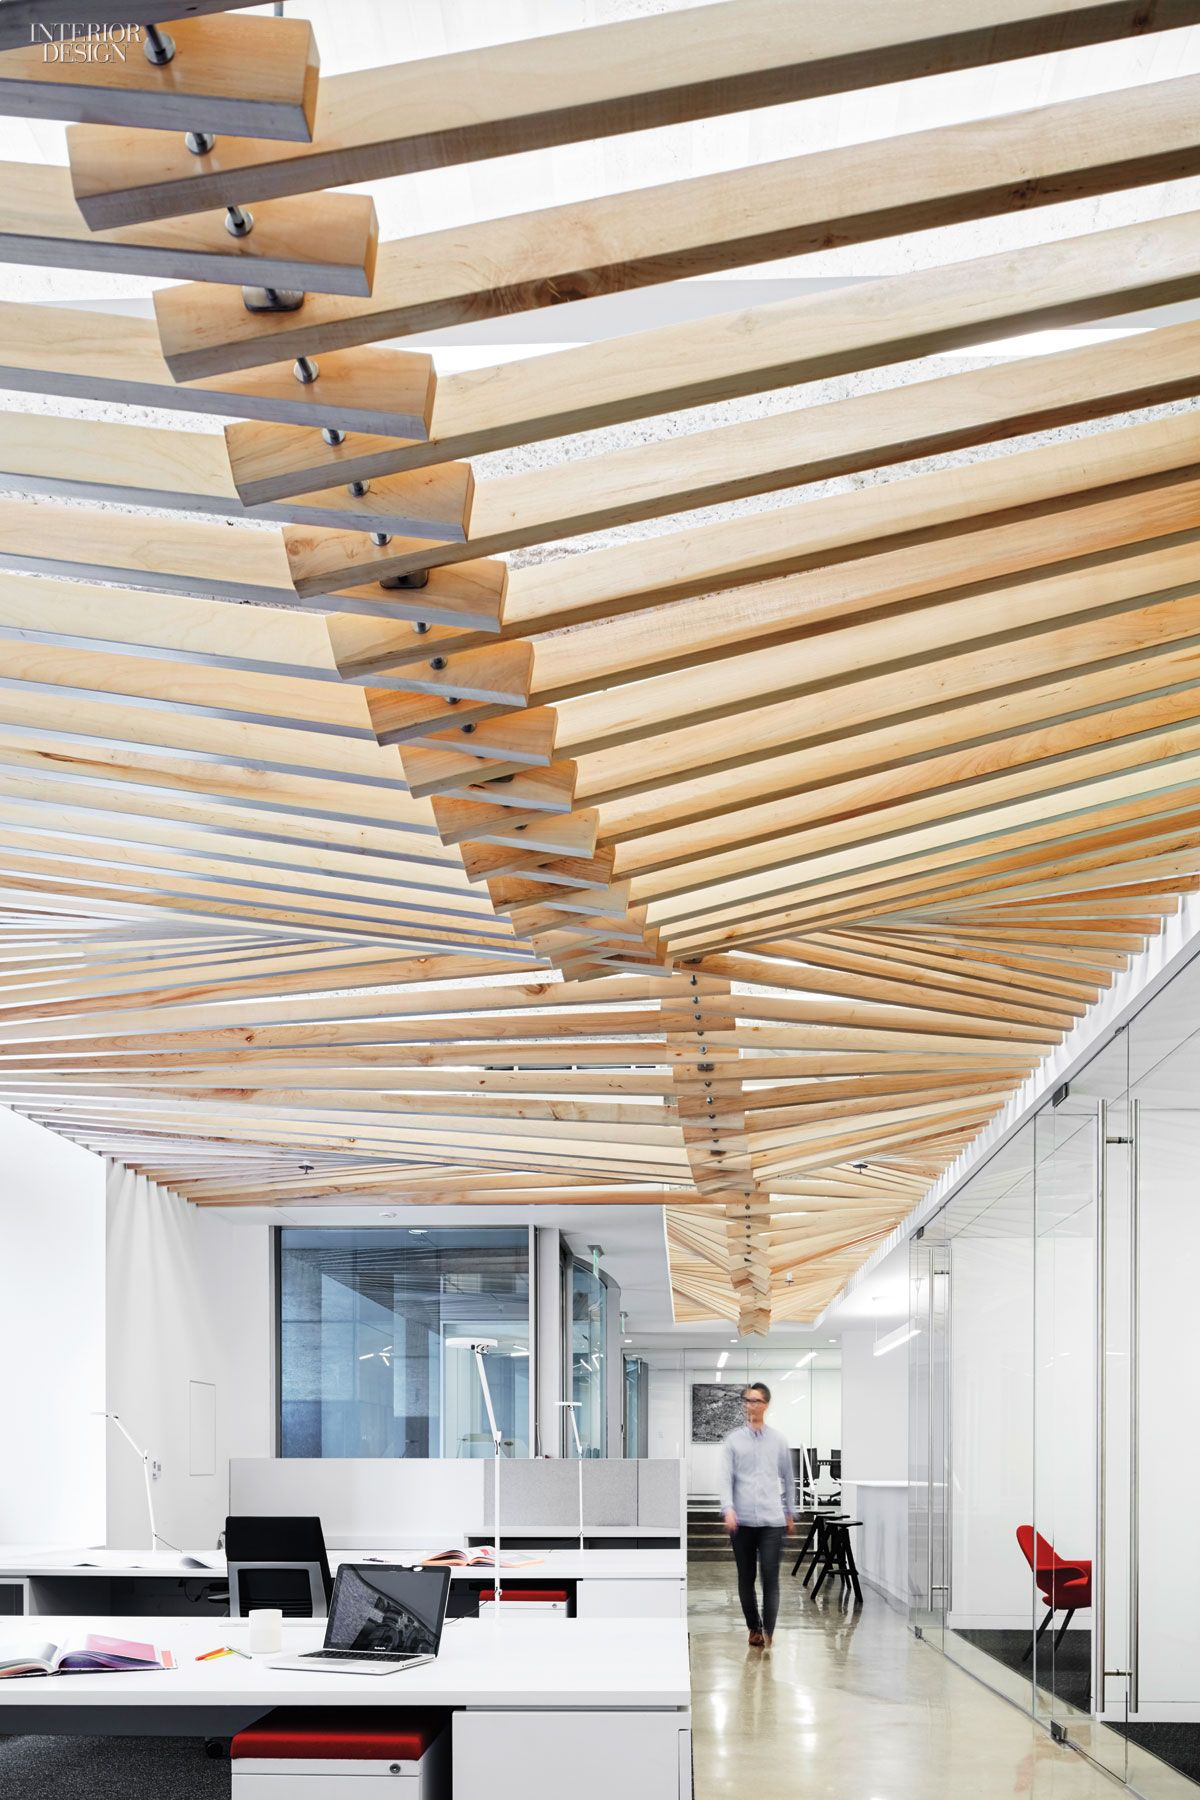 Turelk's Los Angeles Office by Gensler Promotes its Hands-On Approach to its Work